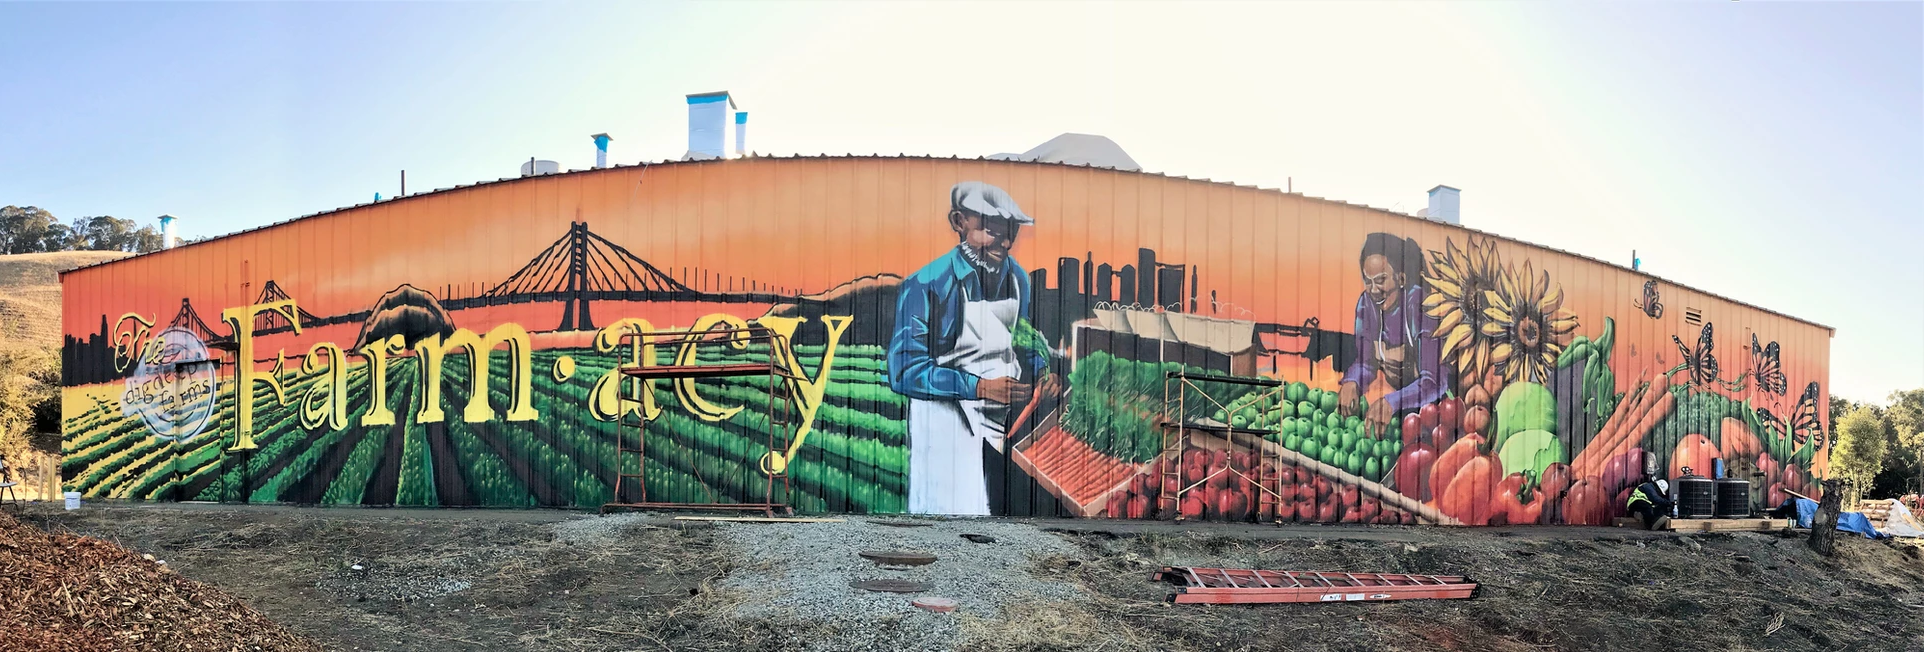 Alameda County's newest public mural, Farmacy